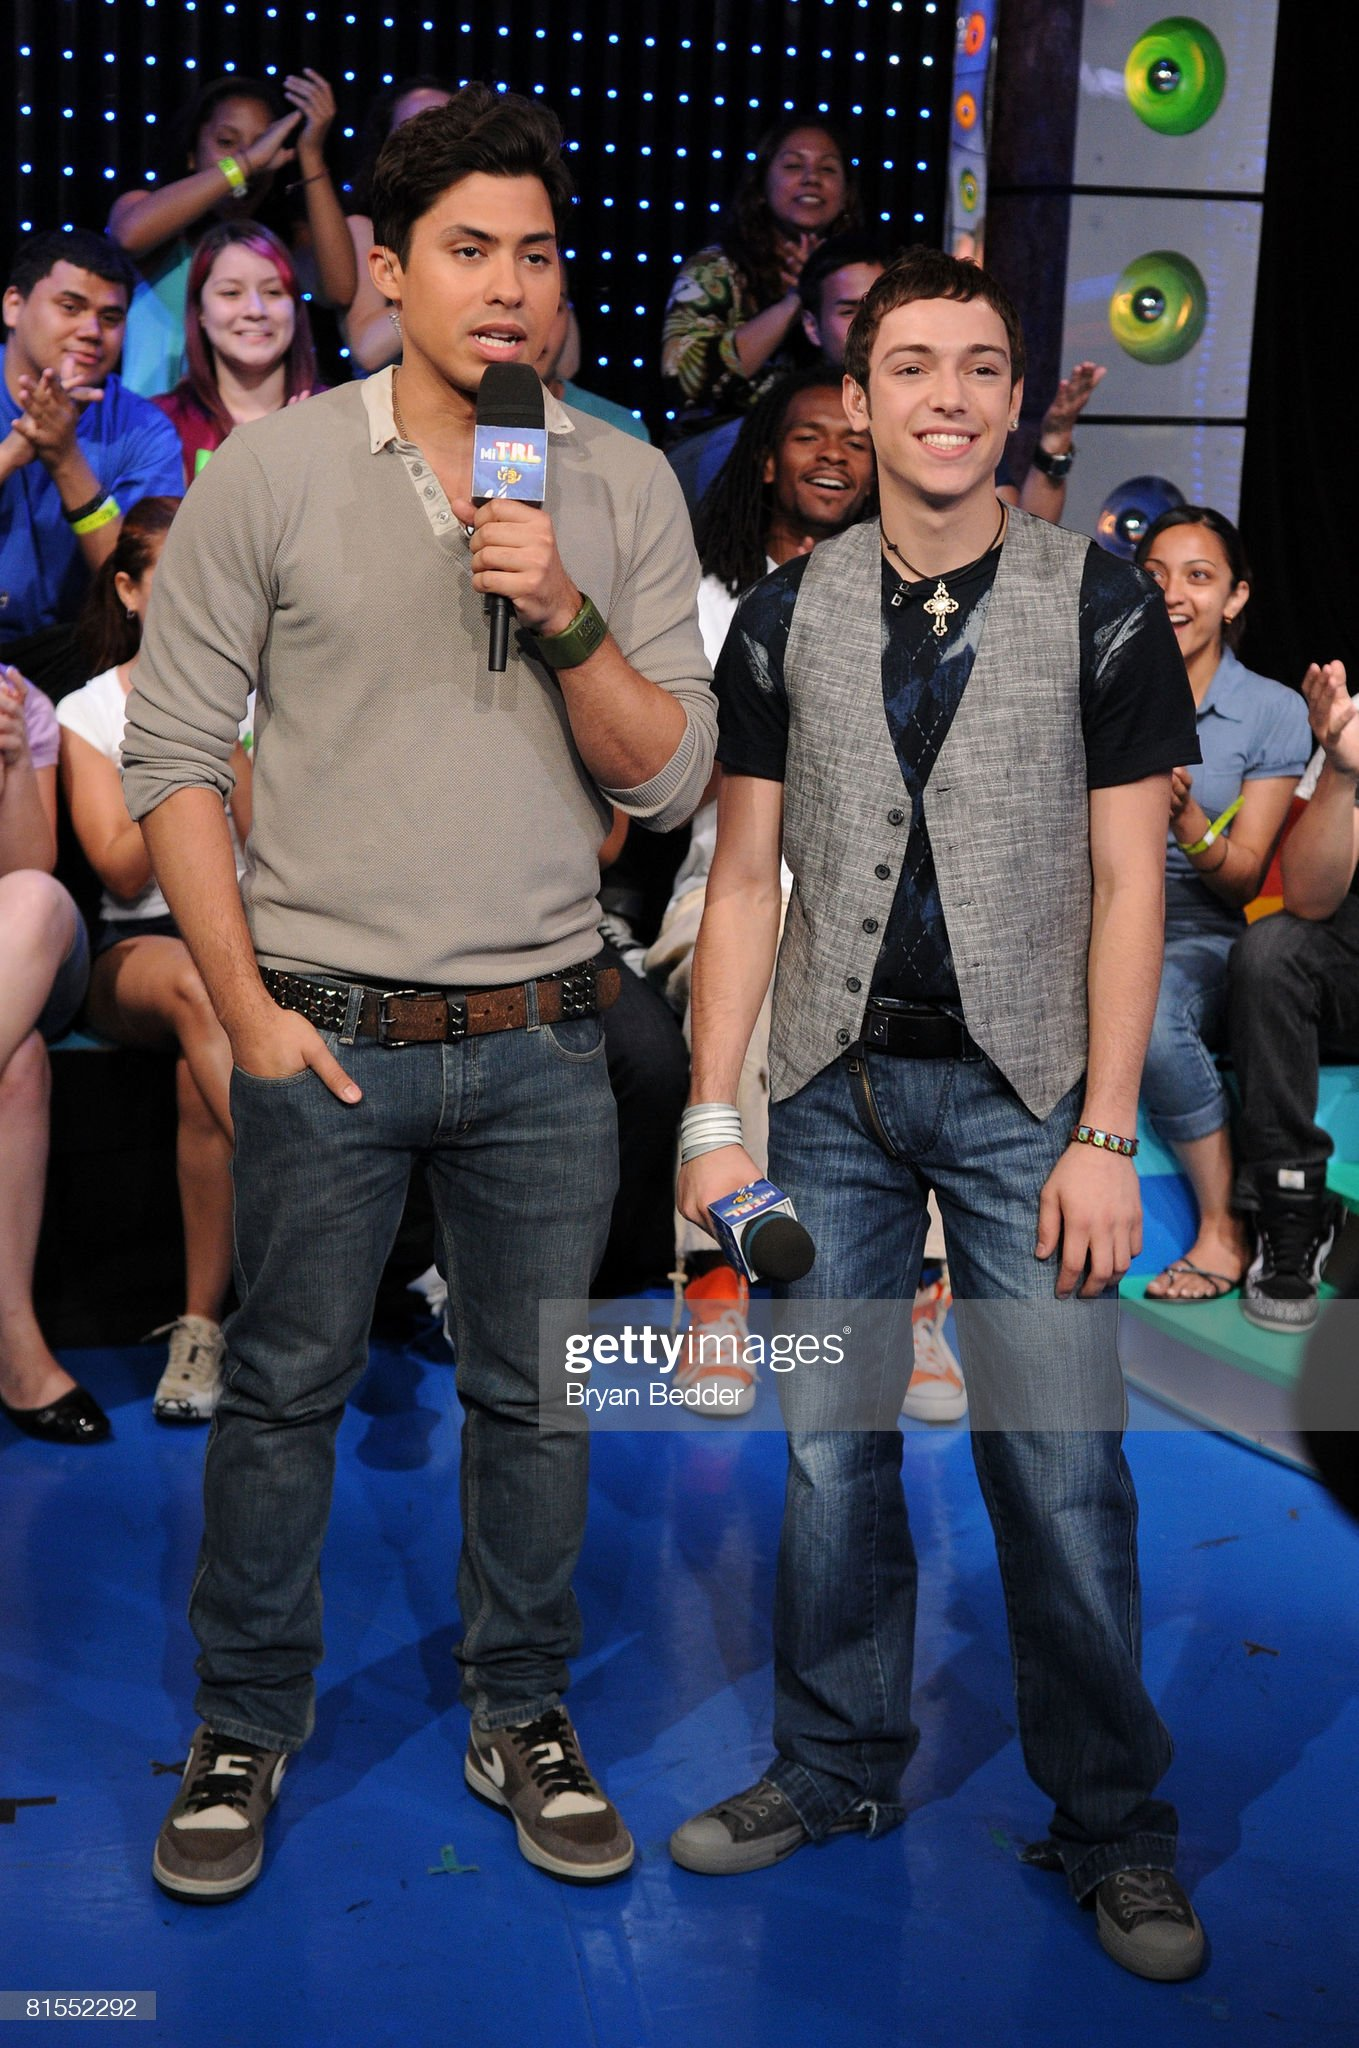 ¿Cuánto mide A.B Abraham Quintanilla III? - Altura - Real height Carlos-santos-and-singer-pee-wee-appear-onstage-during-mtvs-mi-trl-on-picture-id81552292?s=2048x2048